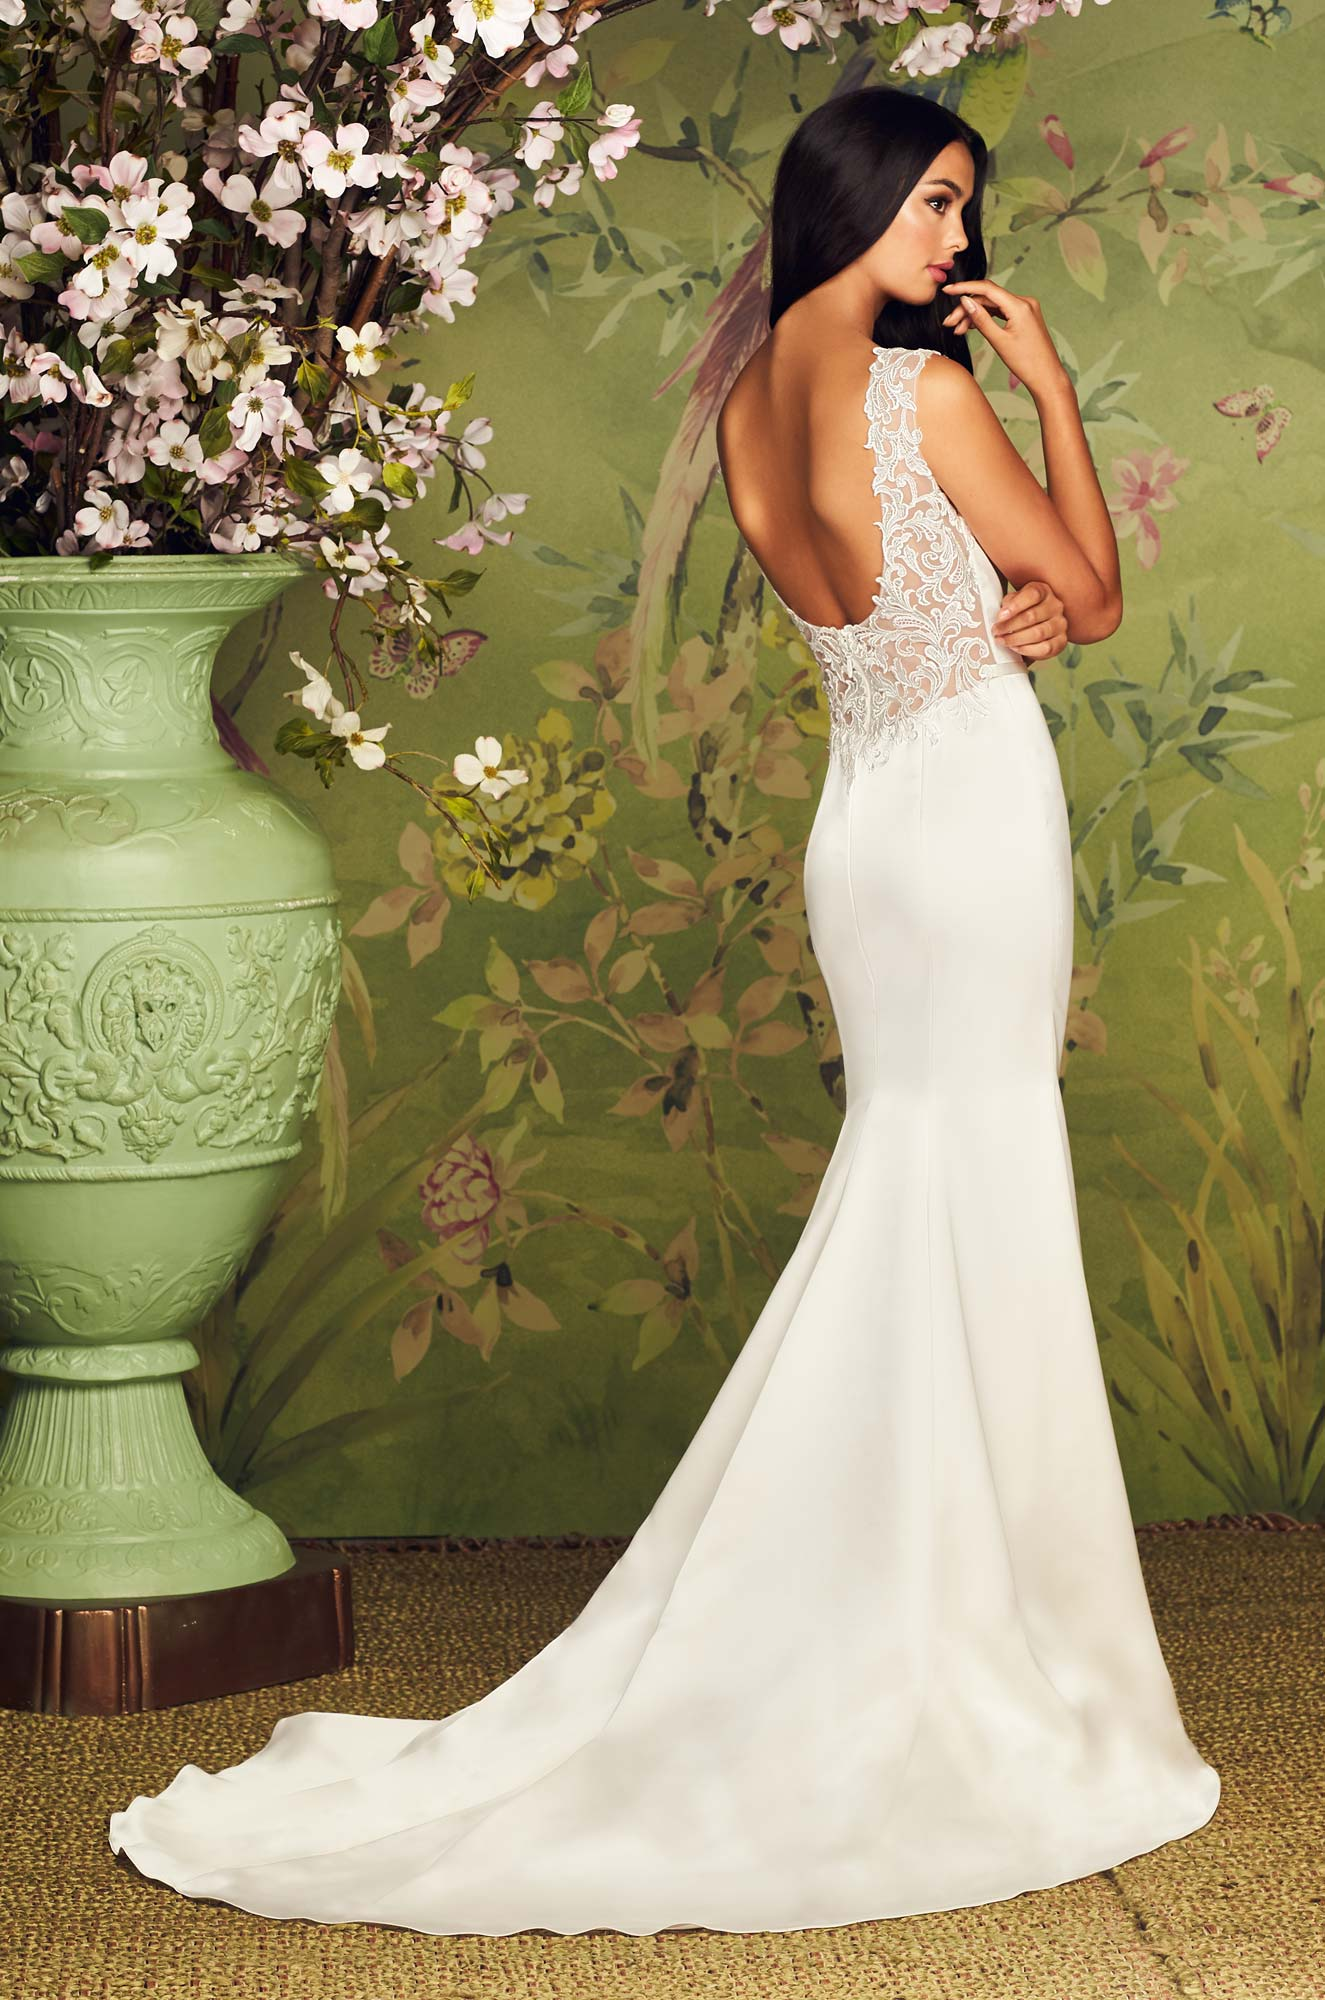 Elegant High Neck Satin Wedding Dress – Style #4882 | Paloma Blanca